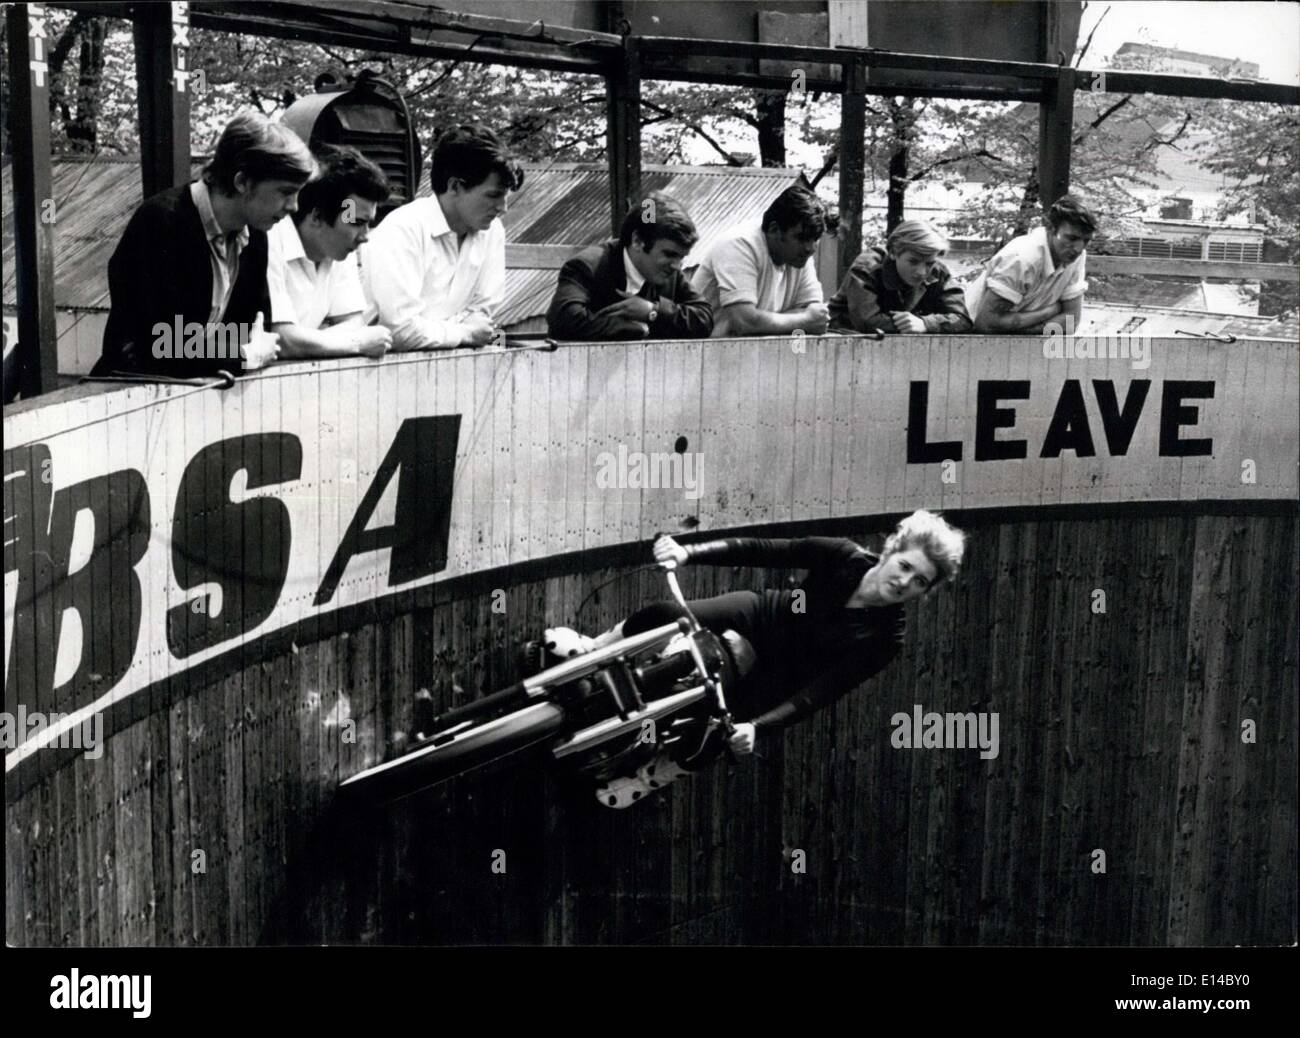 Apr. 17, 2012 - What's driven her up the wall? the sheer joy of roaring round the 20' Wall of Death. - Stock Image